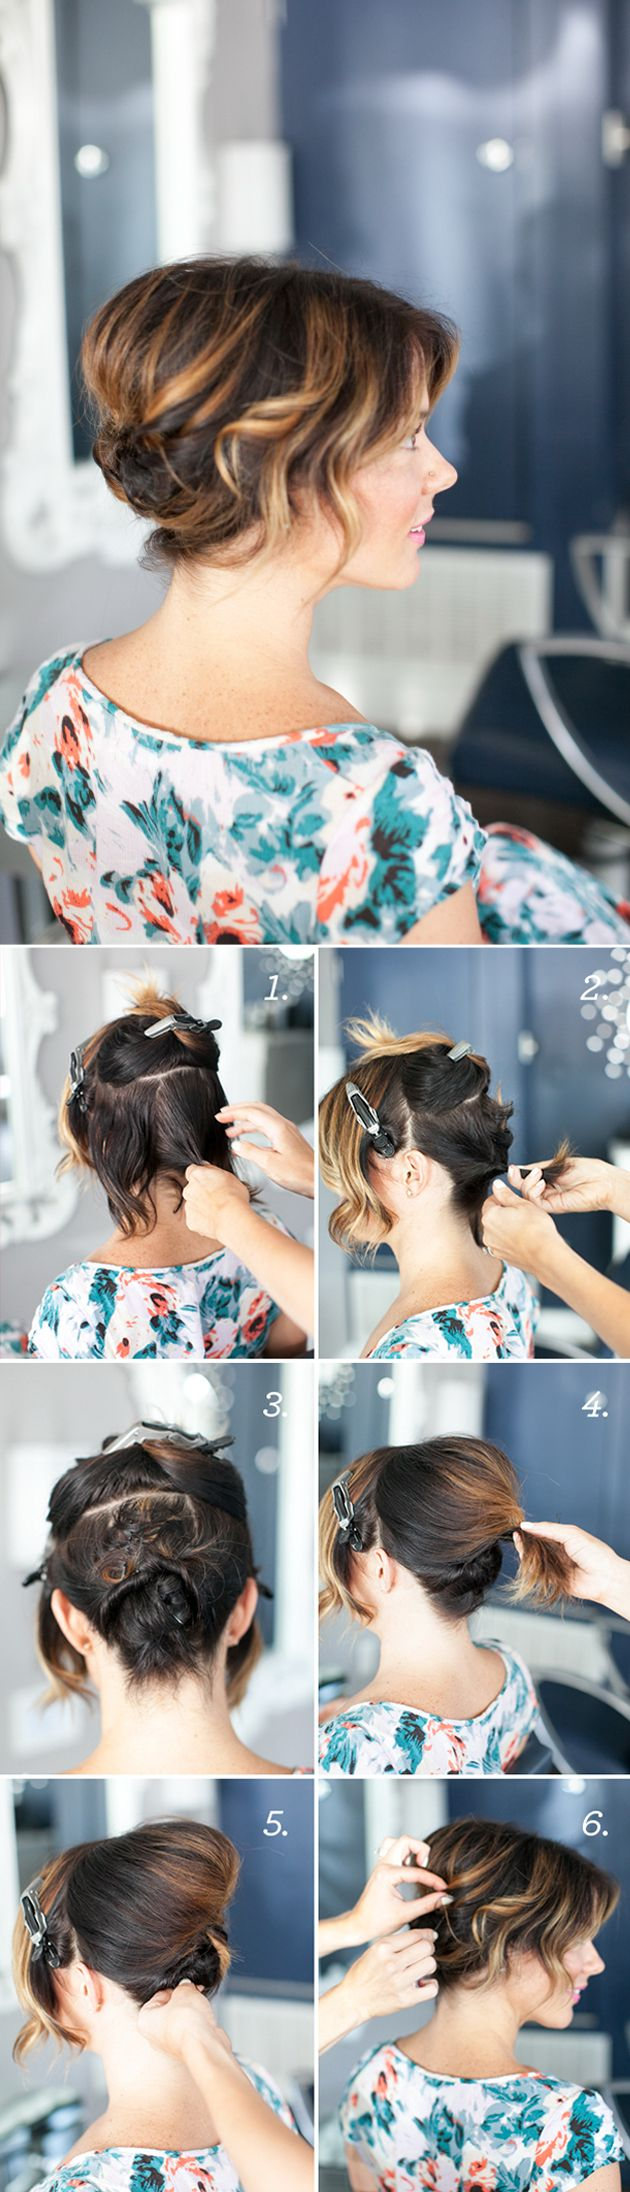 20 Creative Short Wedding Hairstyles for Brides